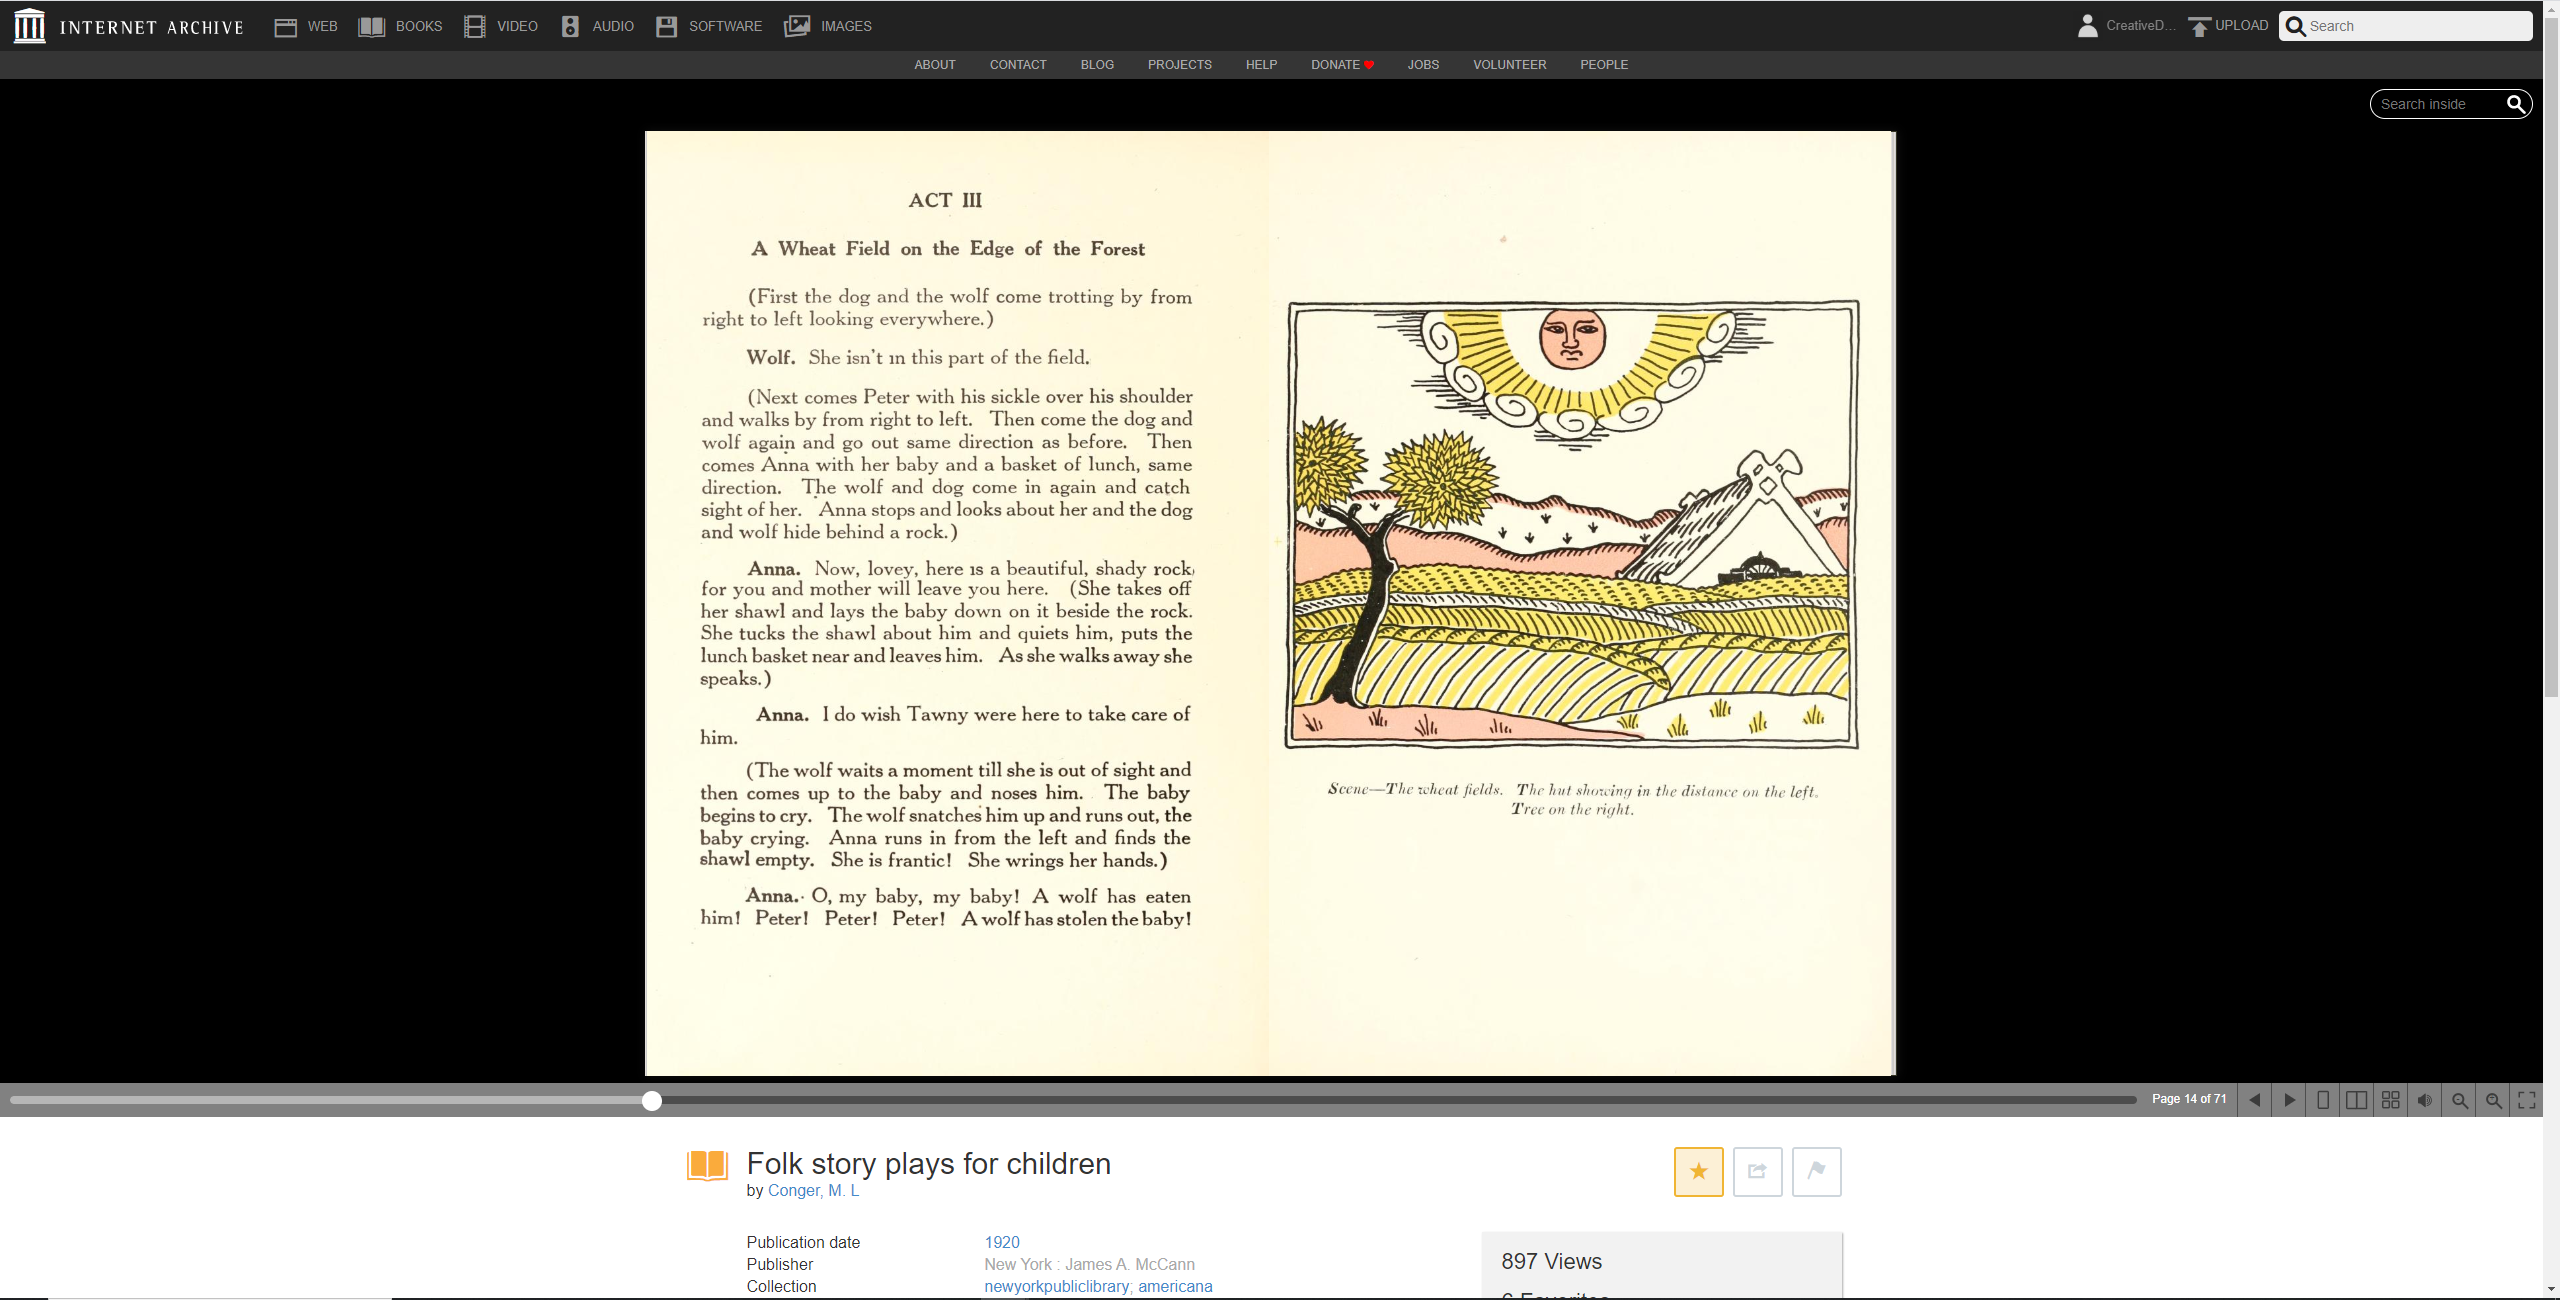 Example of Internet Archive's reading interface